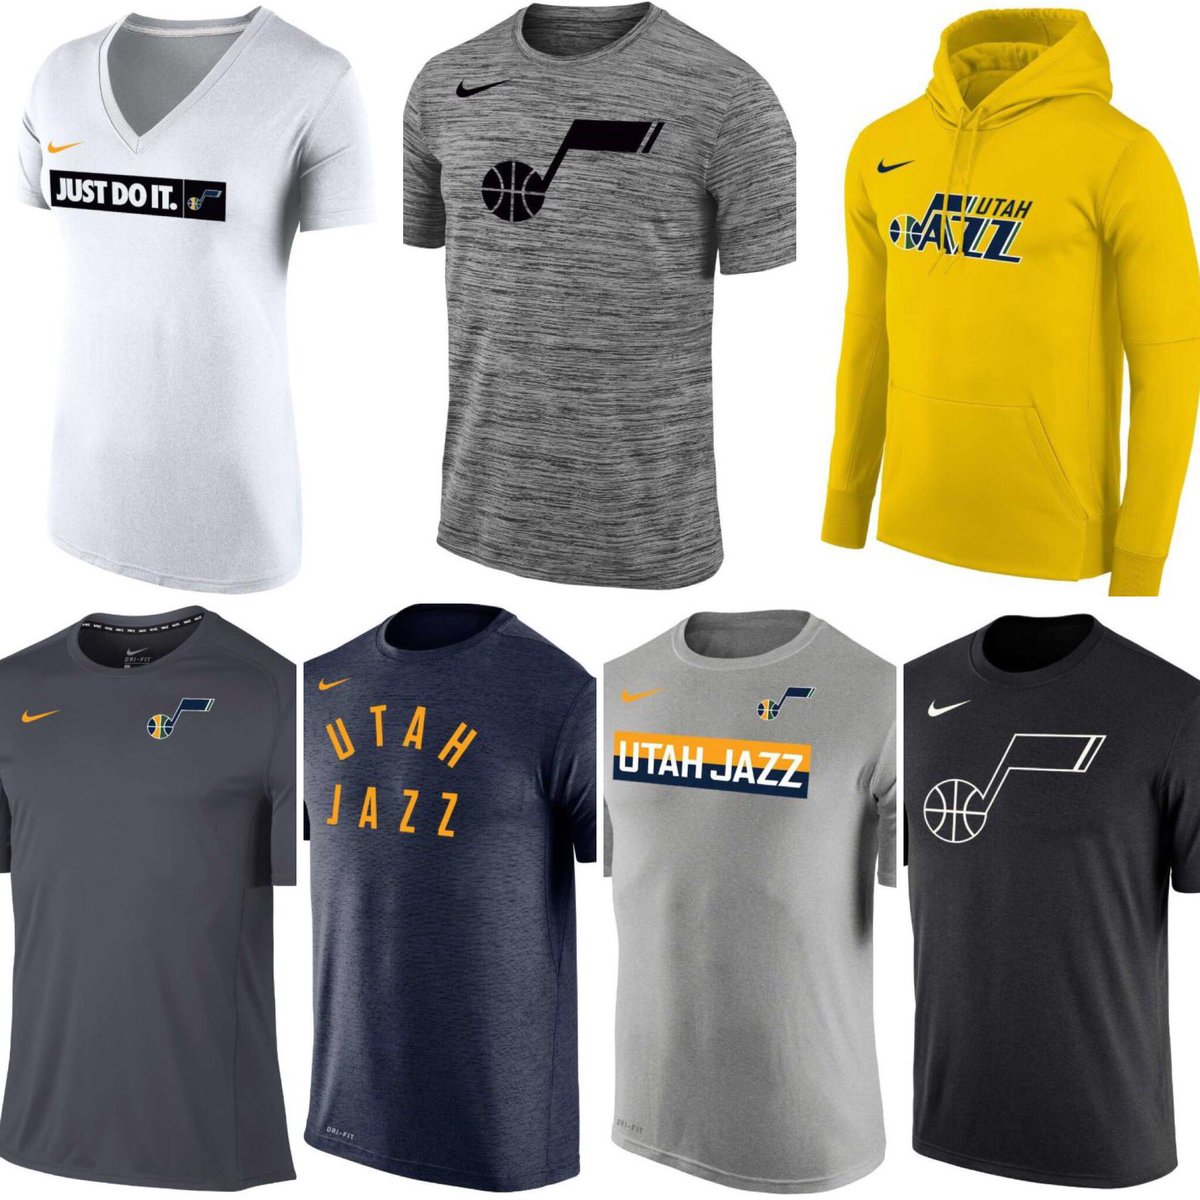 check out 52db5 88afb Utah Jazz Team Store on Twitter: